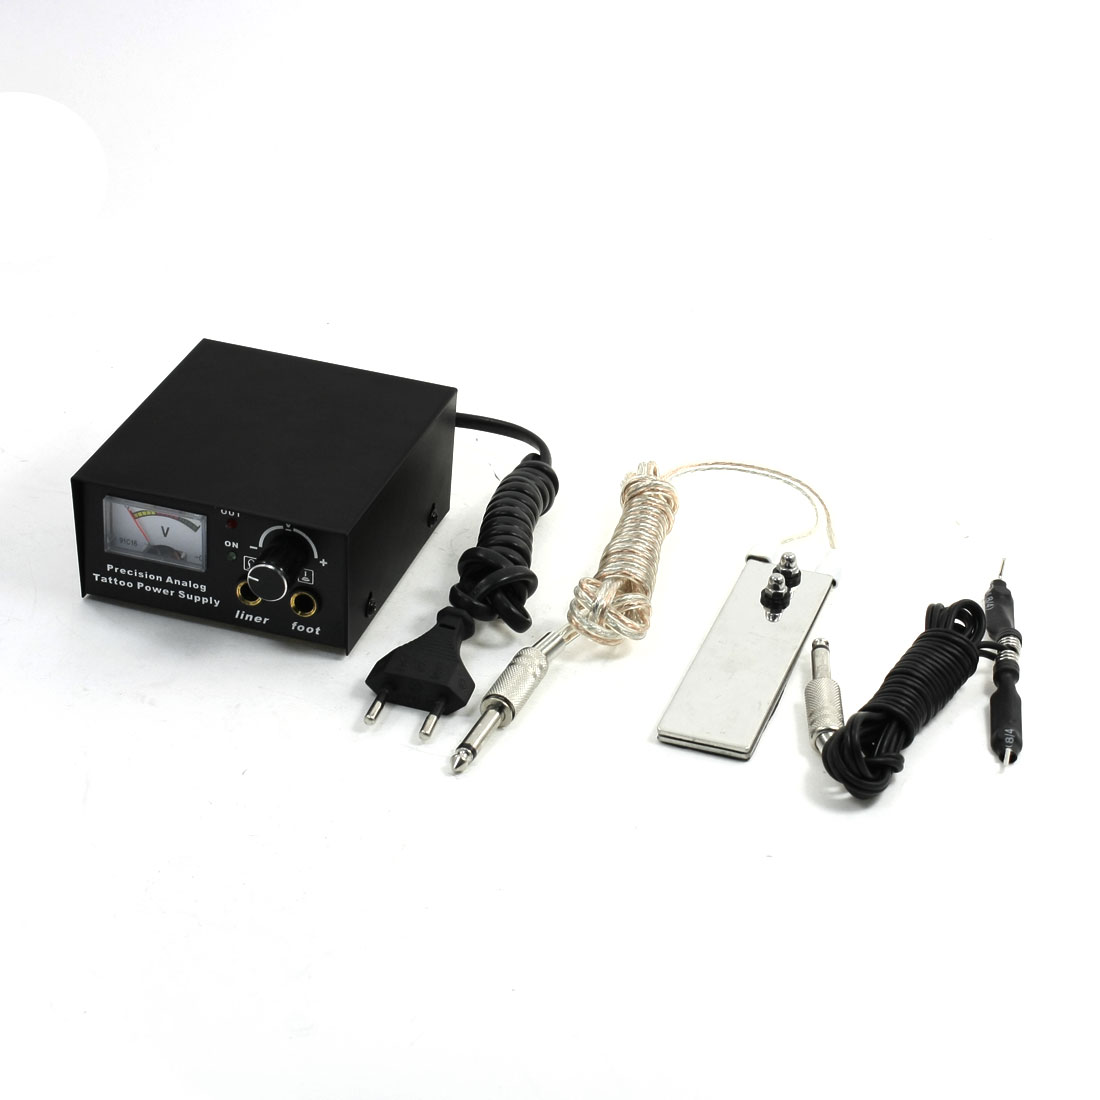 EU Plug AC 90-250V Digital LED Tattoo Power Supply w Clipcord